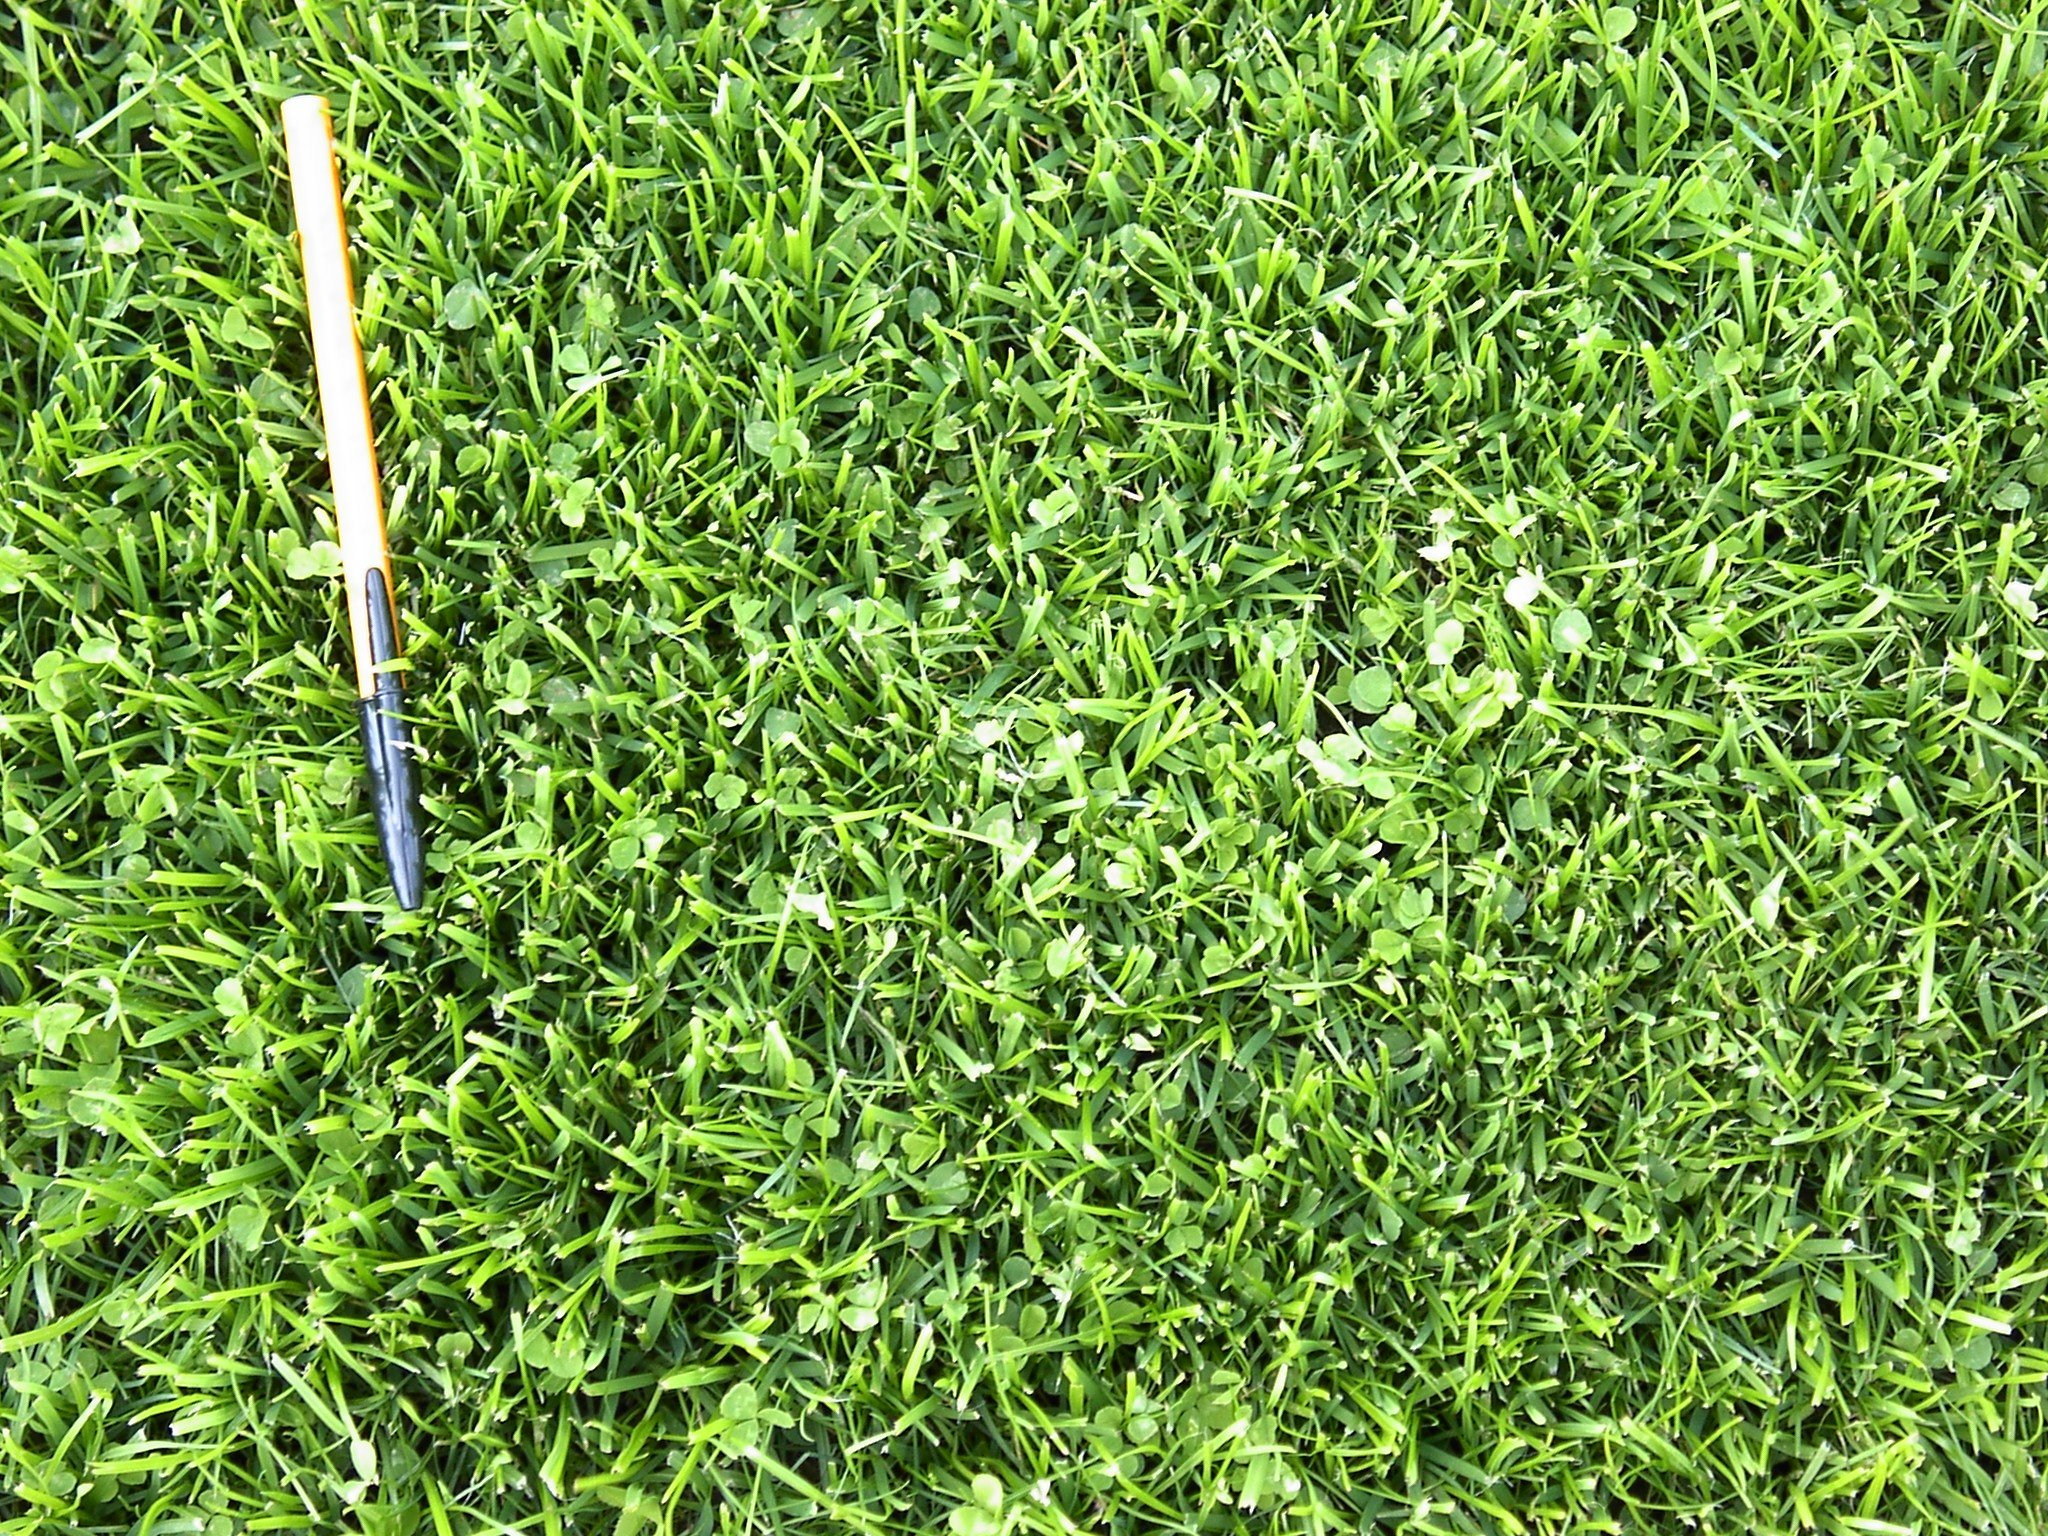 X-Seed 440AS0135UCT-5 MicroLawn Grass & Micro-Clover Mixture, 5, White by X-Seed (Image #4)